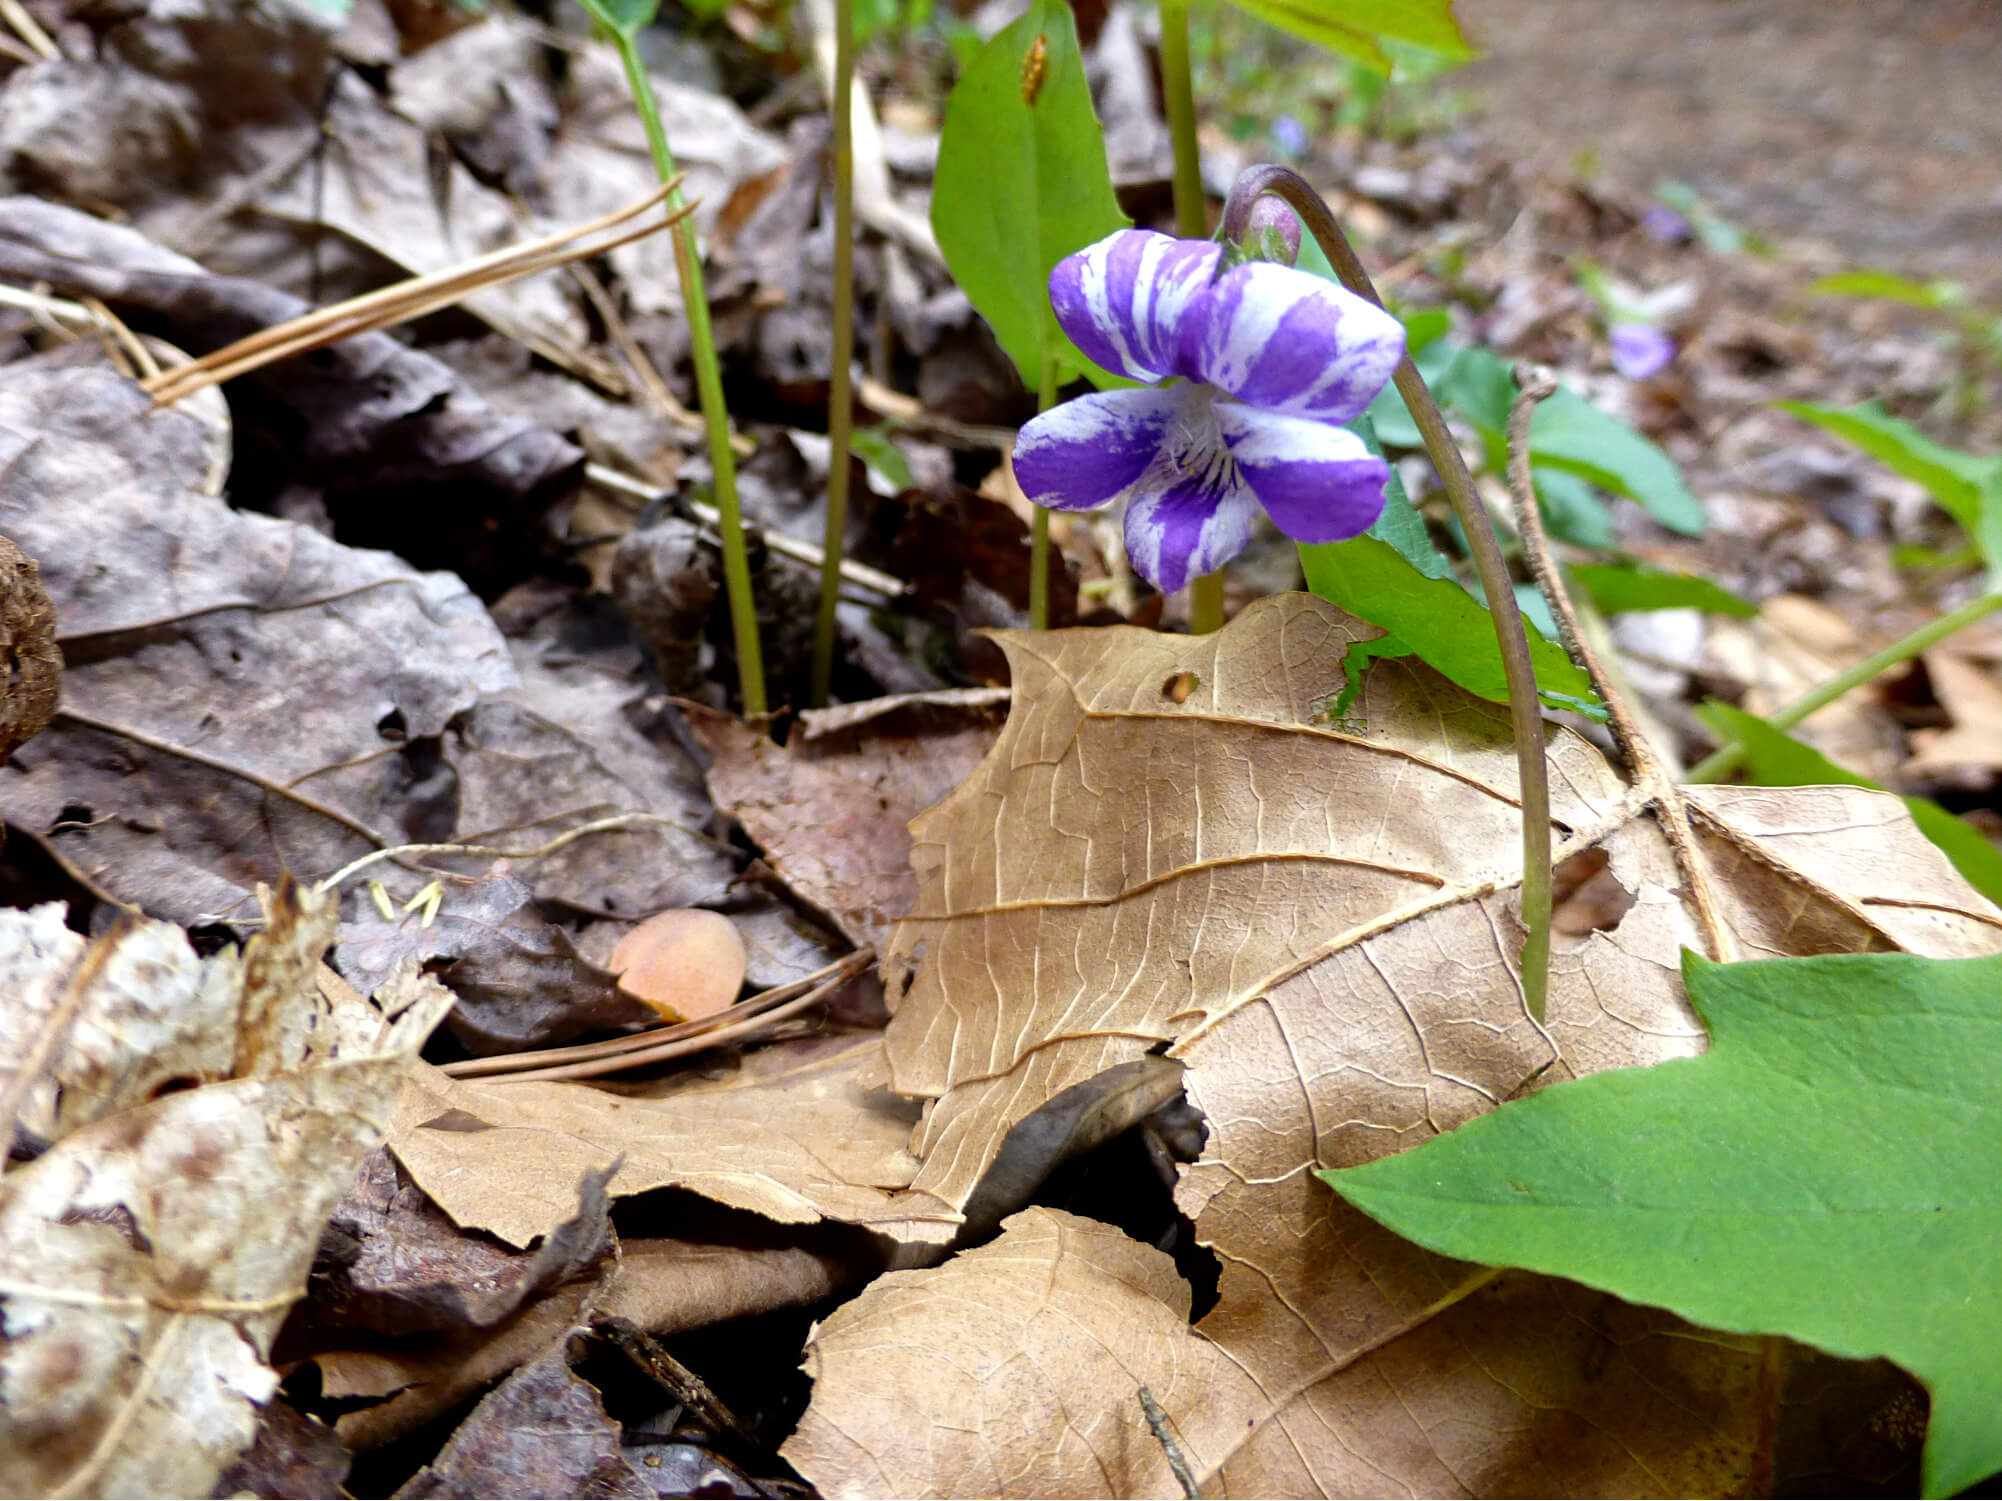 Close-up of a multi-colored flower blooming as it grows up through dried leaves